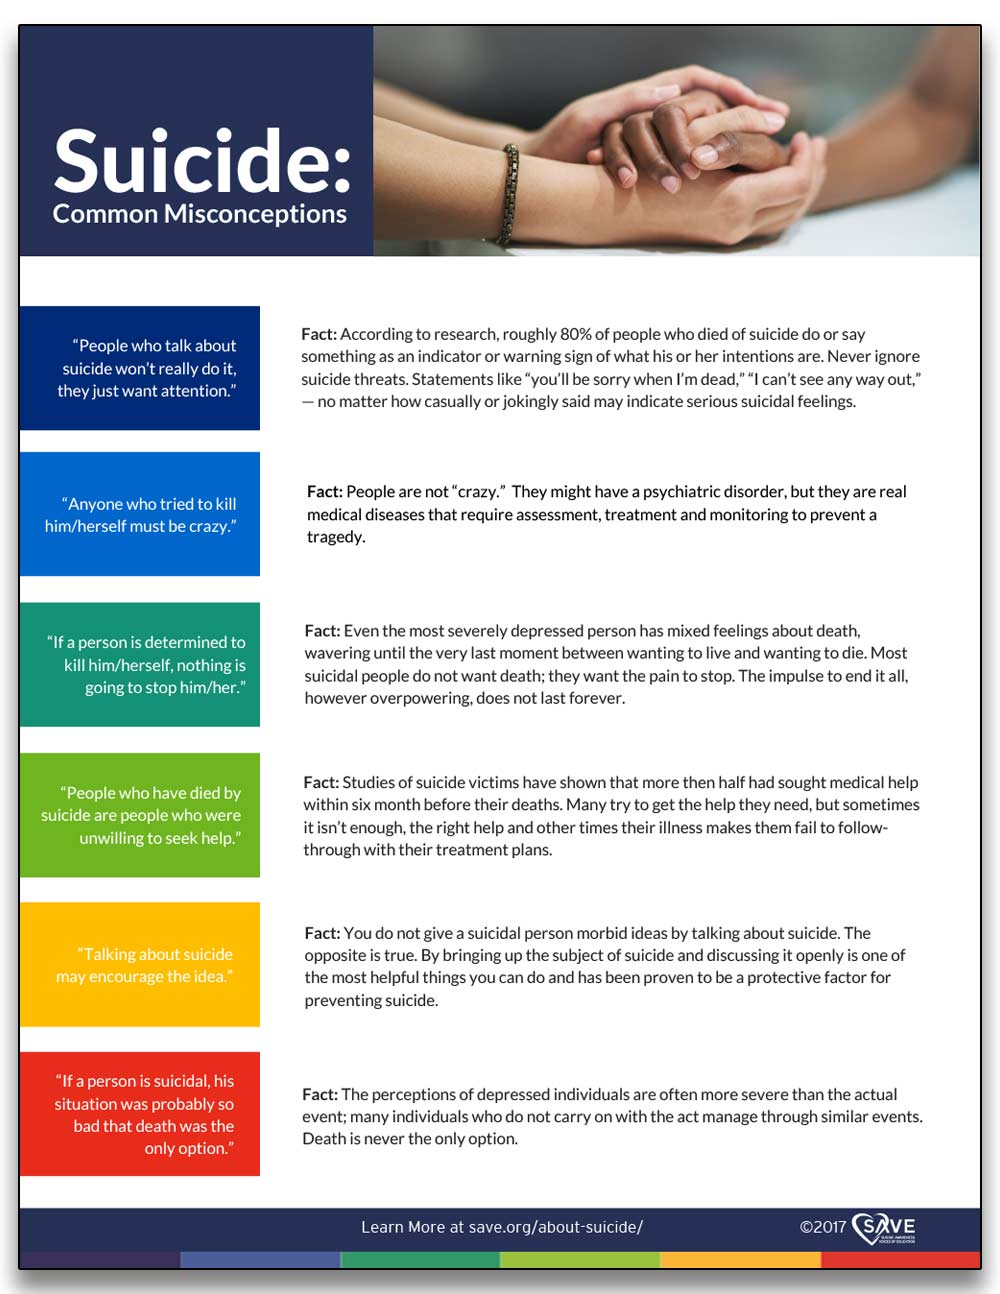 information sheet about suicide common misconceptions